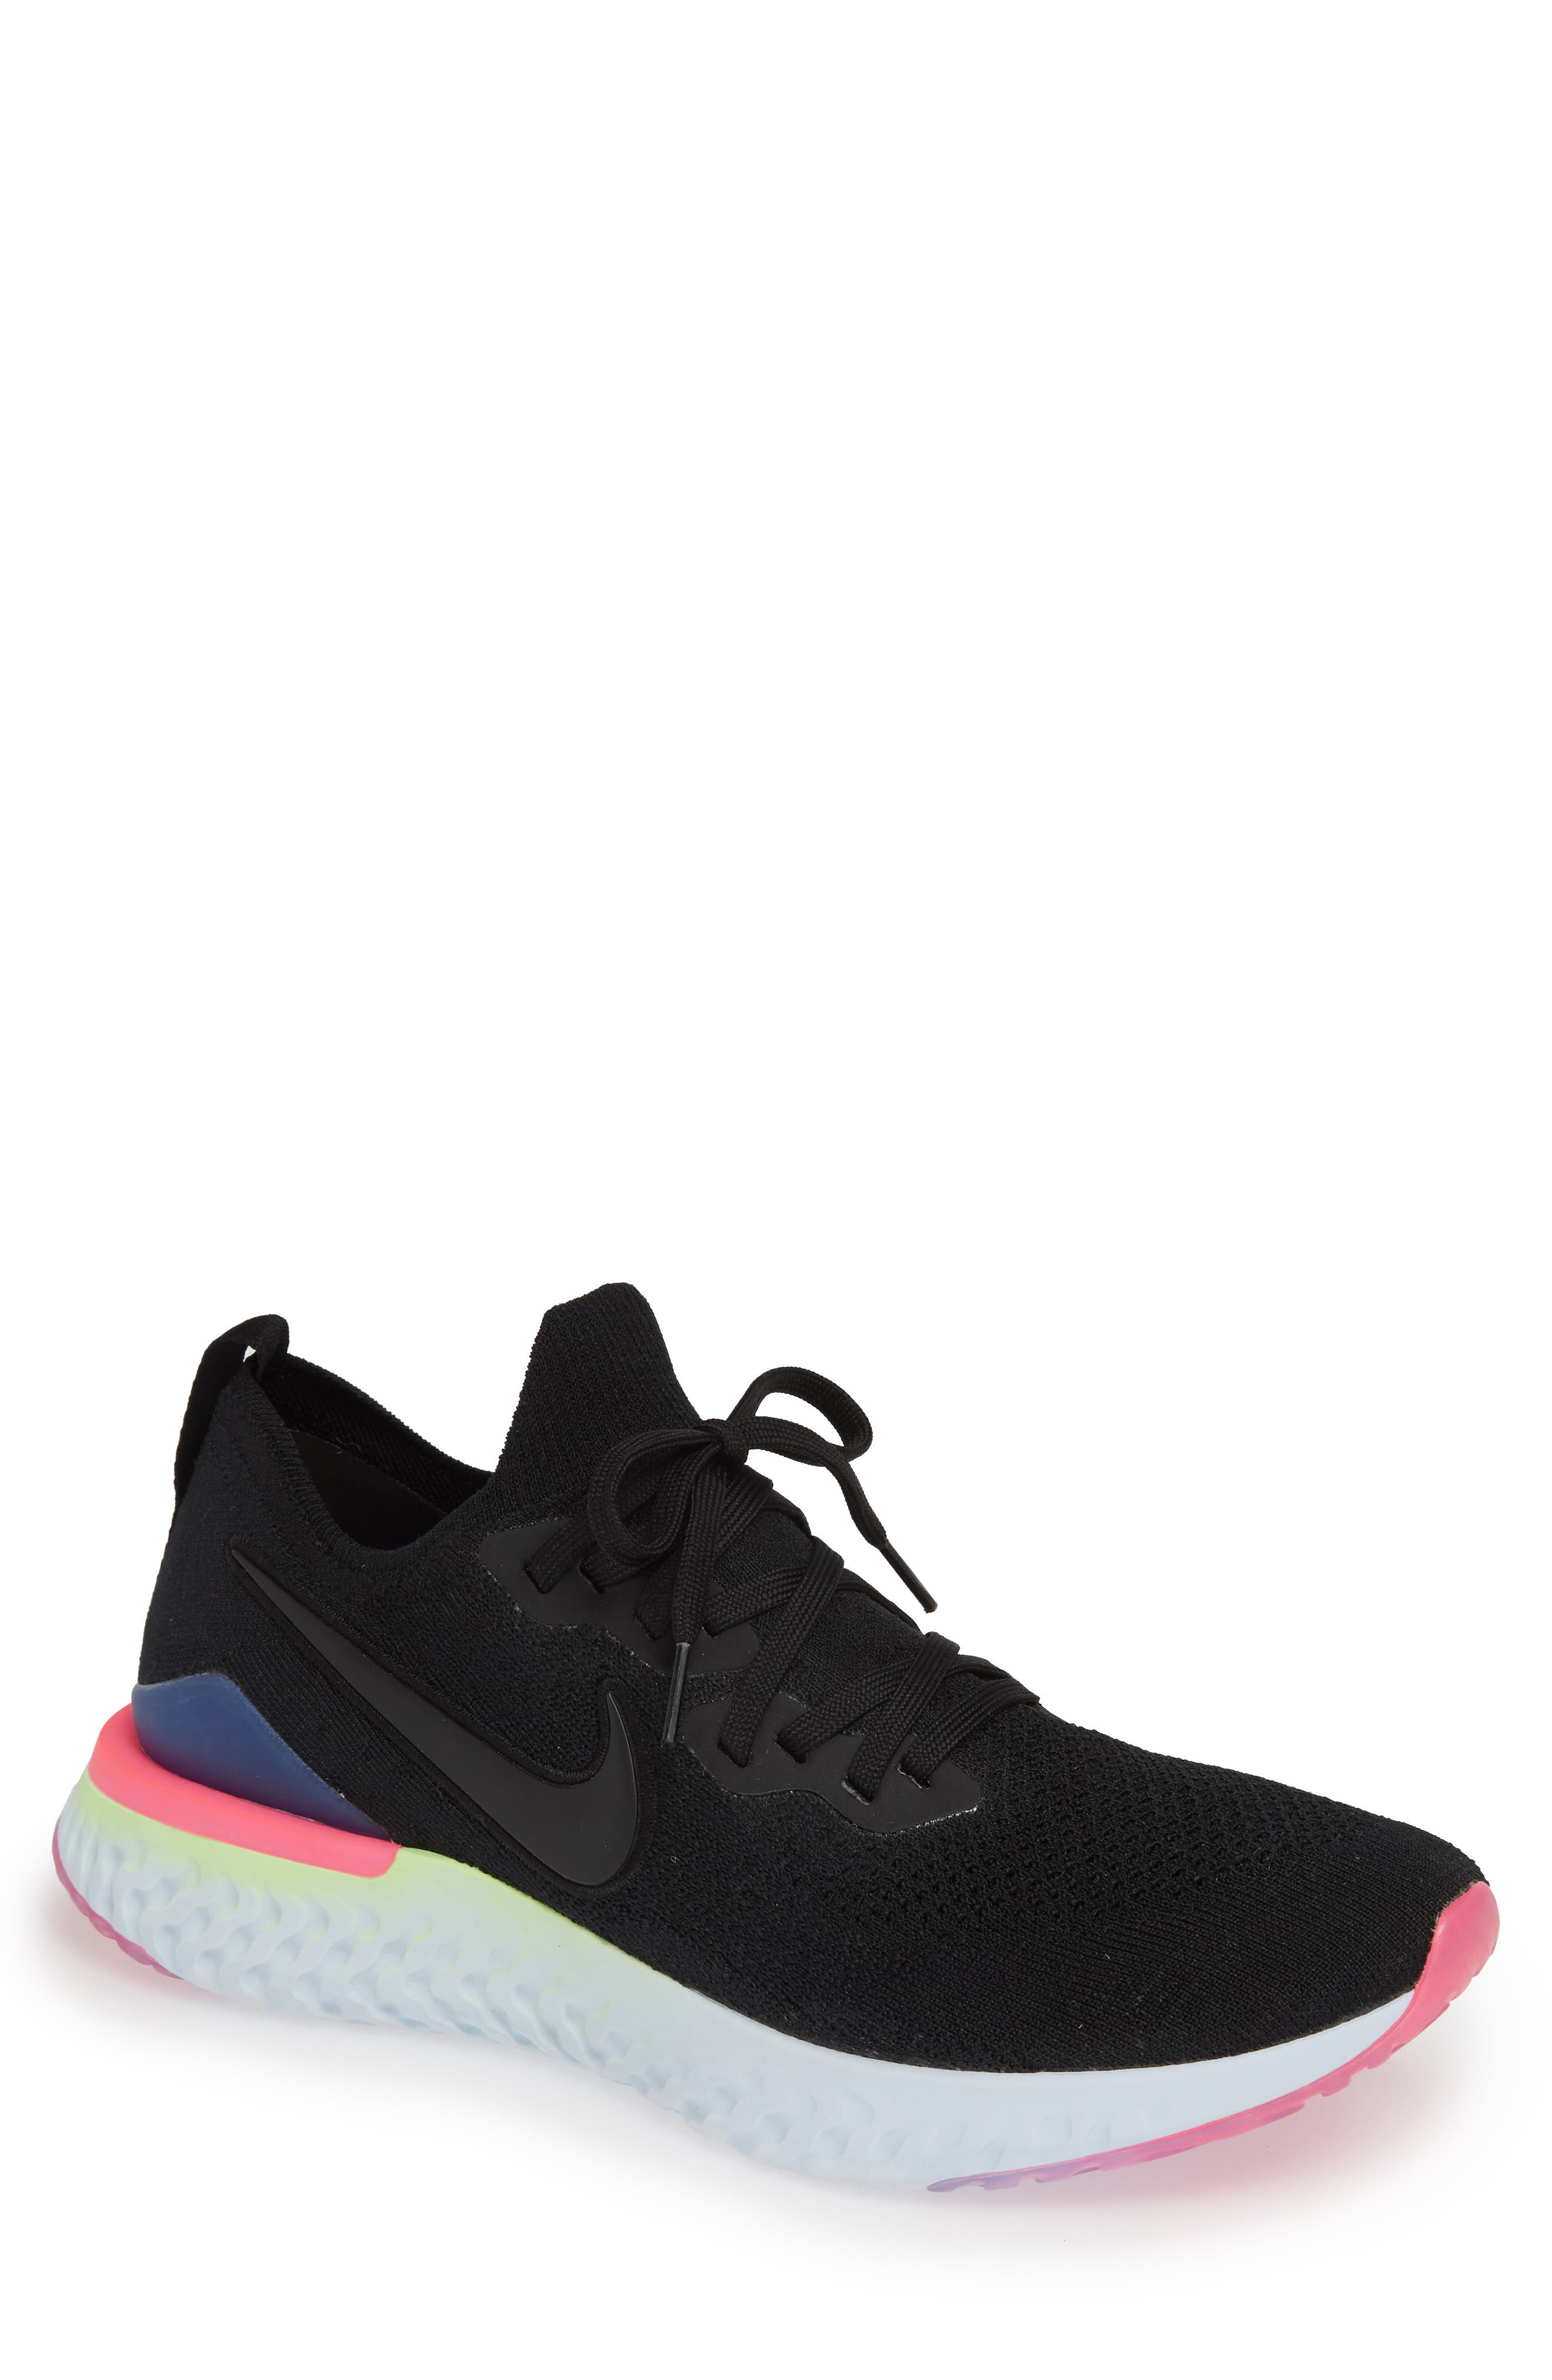 Epic React Flyknit 2 Running Shoe,                             Main thumbnail 1, color,                             BLACK/ SAPPHIRE/ LIME BLAST